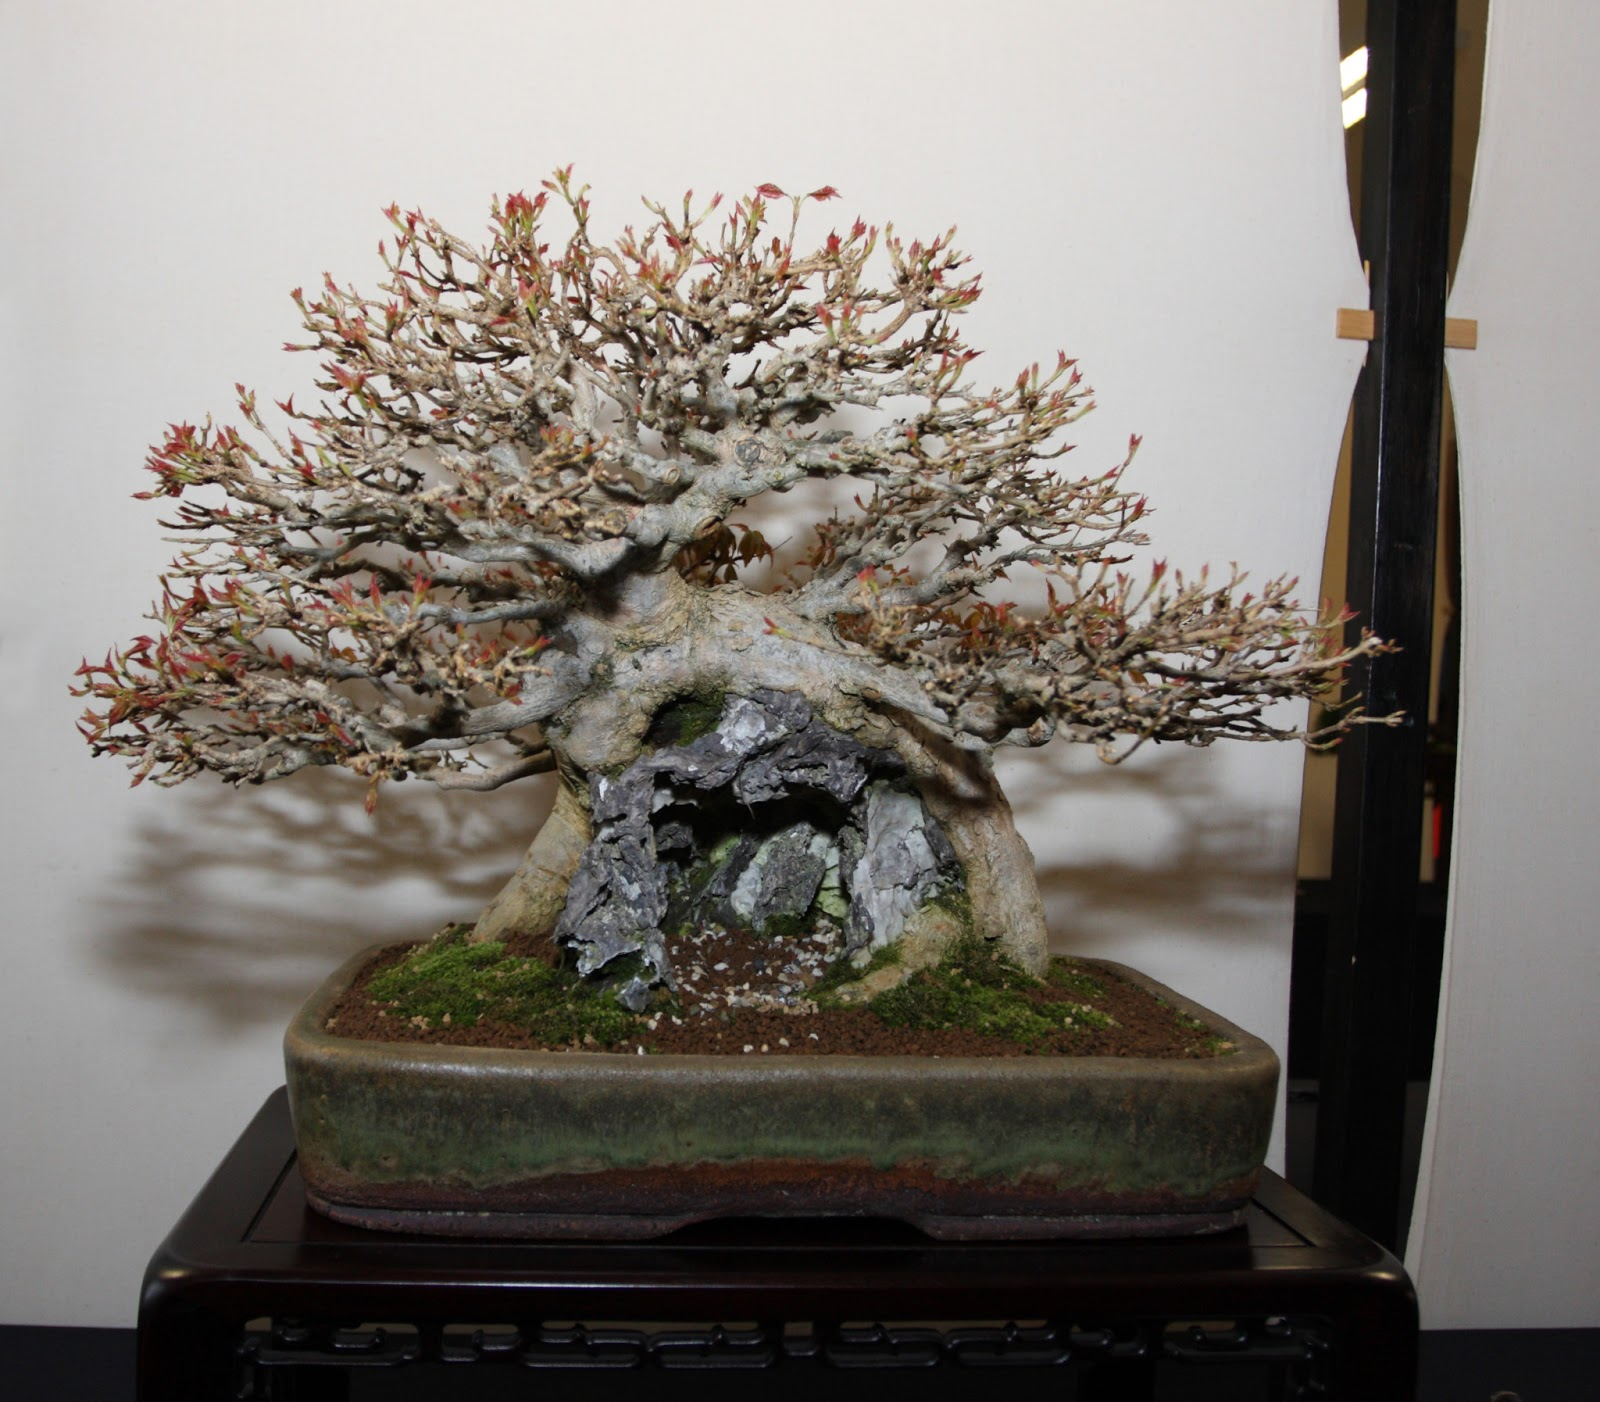 Steve Tolley39s Bonsai And Suiseki Blog April 2013